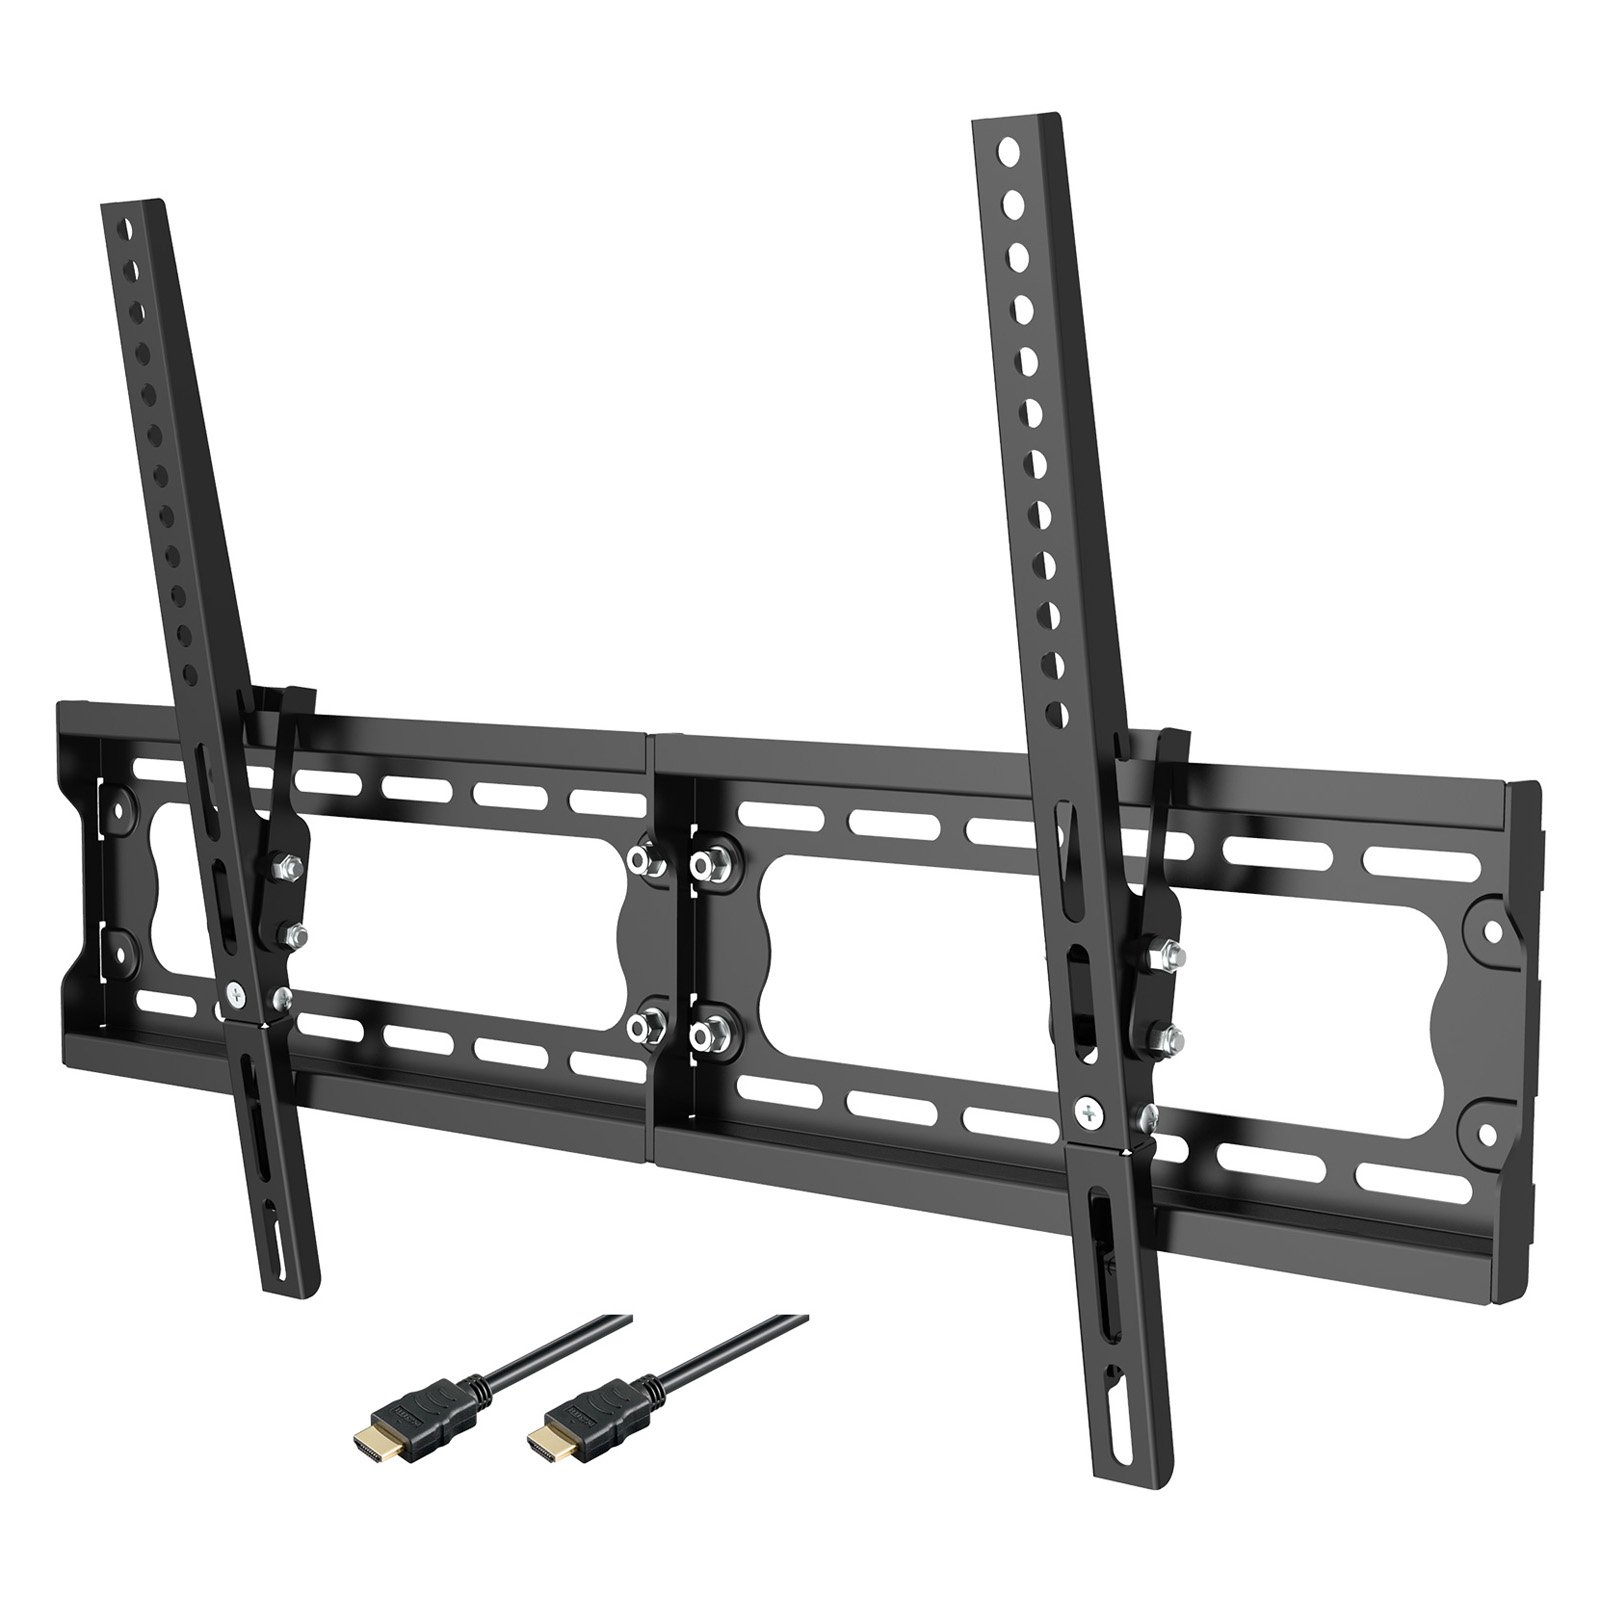 Loctek F7M Low Profile fixed LED TV Bracket Mount Bracket for 32 -80 Inch LCD LED TV with VESA 600x400